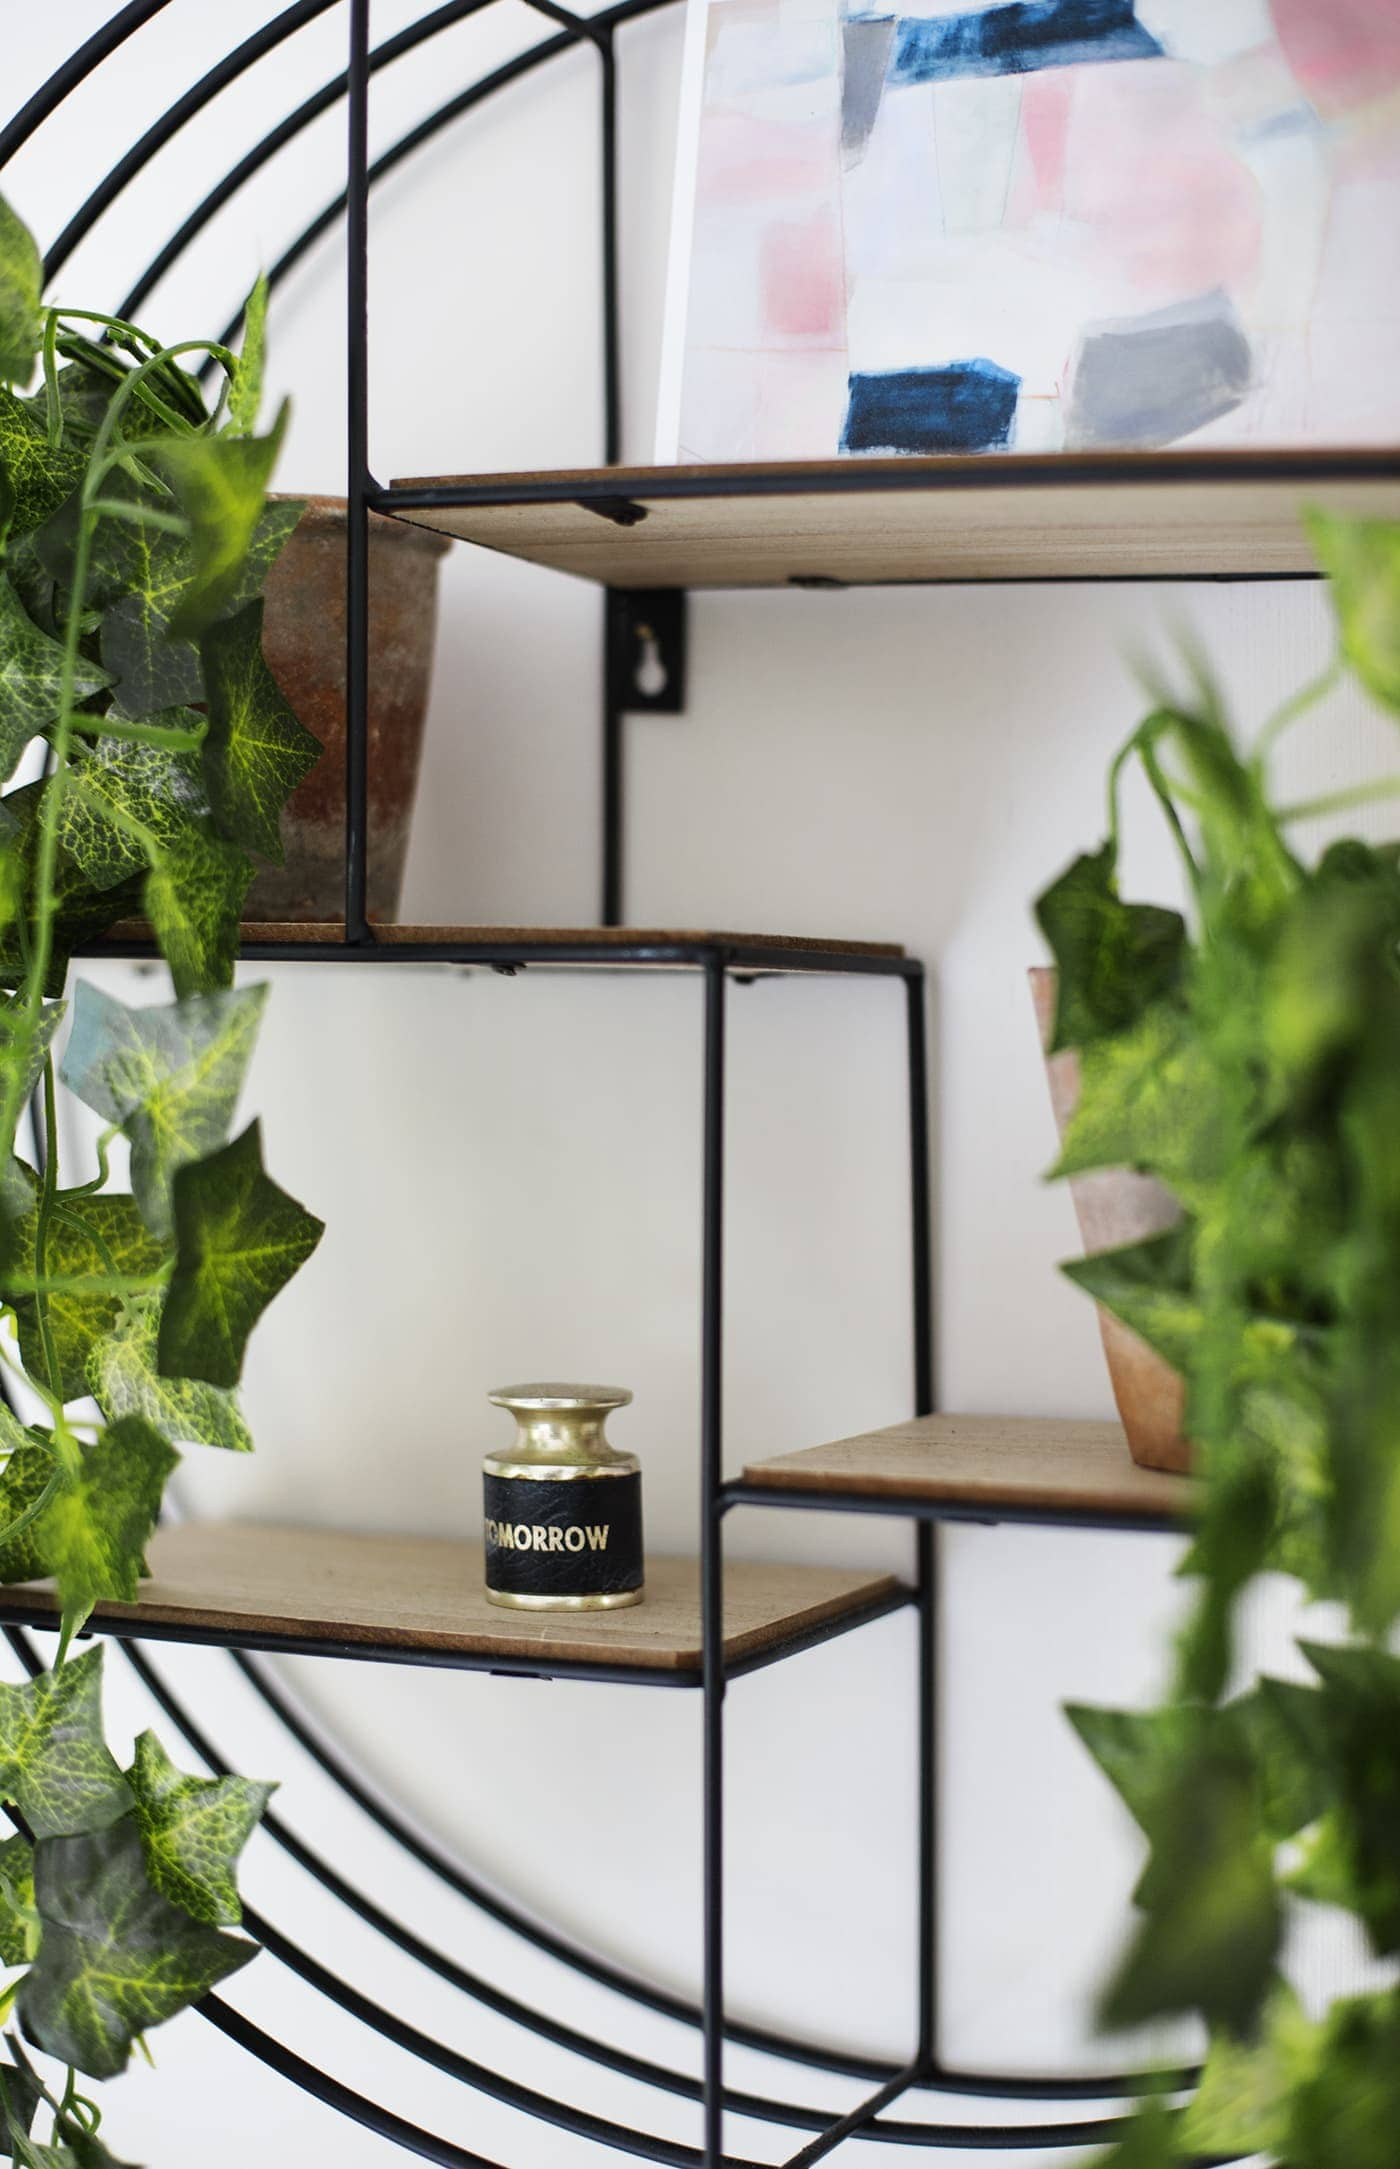 May styling the seasons | house plants | wall shelves | home decor